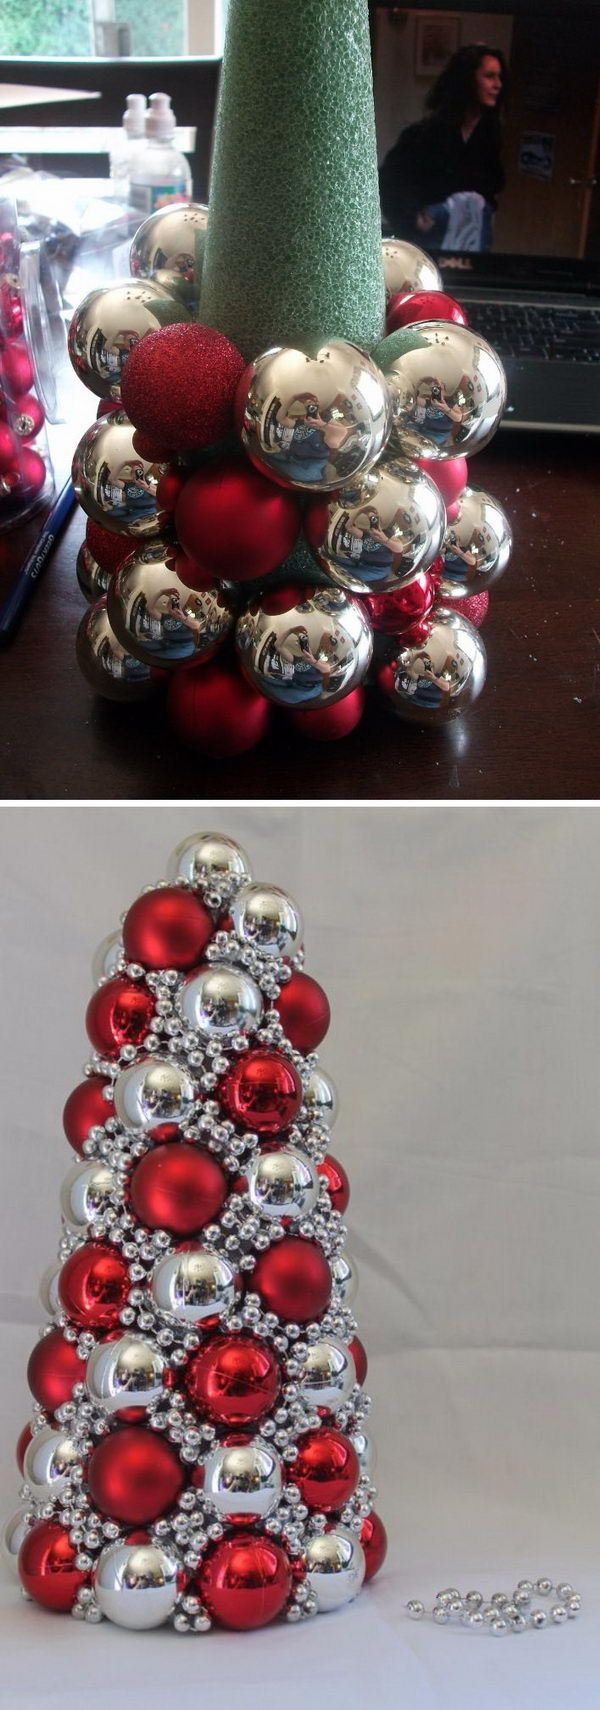 20+ Great Ways To Decorate Your Home With Christmas Ornaments - Styletic                                                                                                                                                                                 More